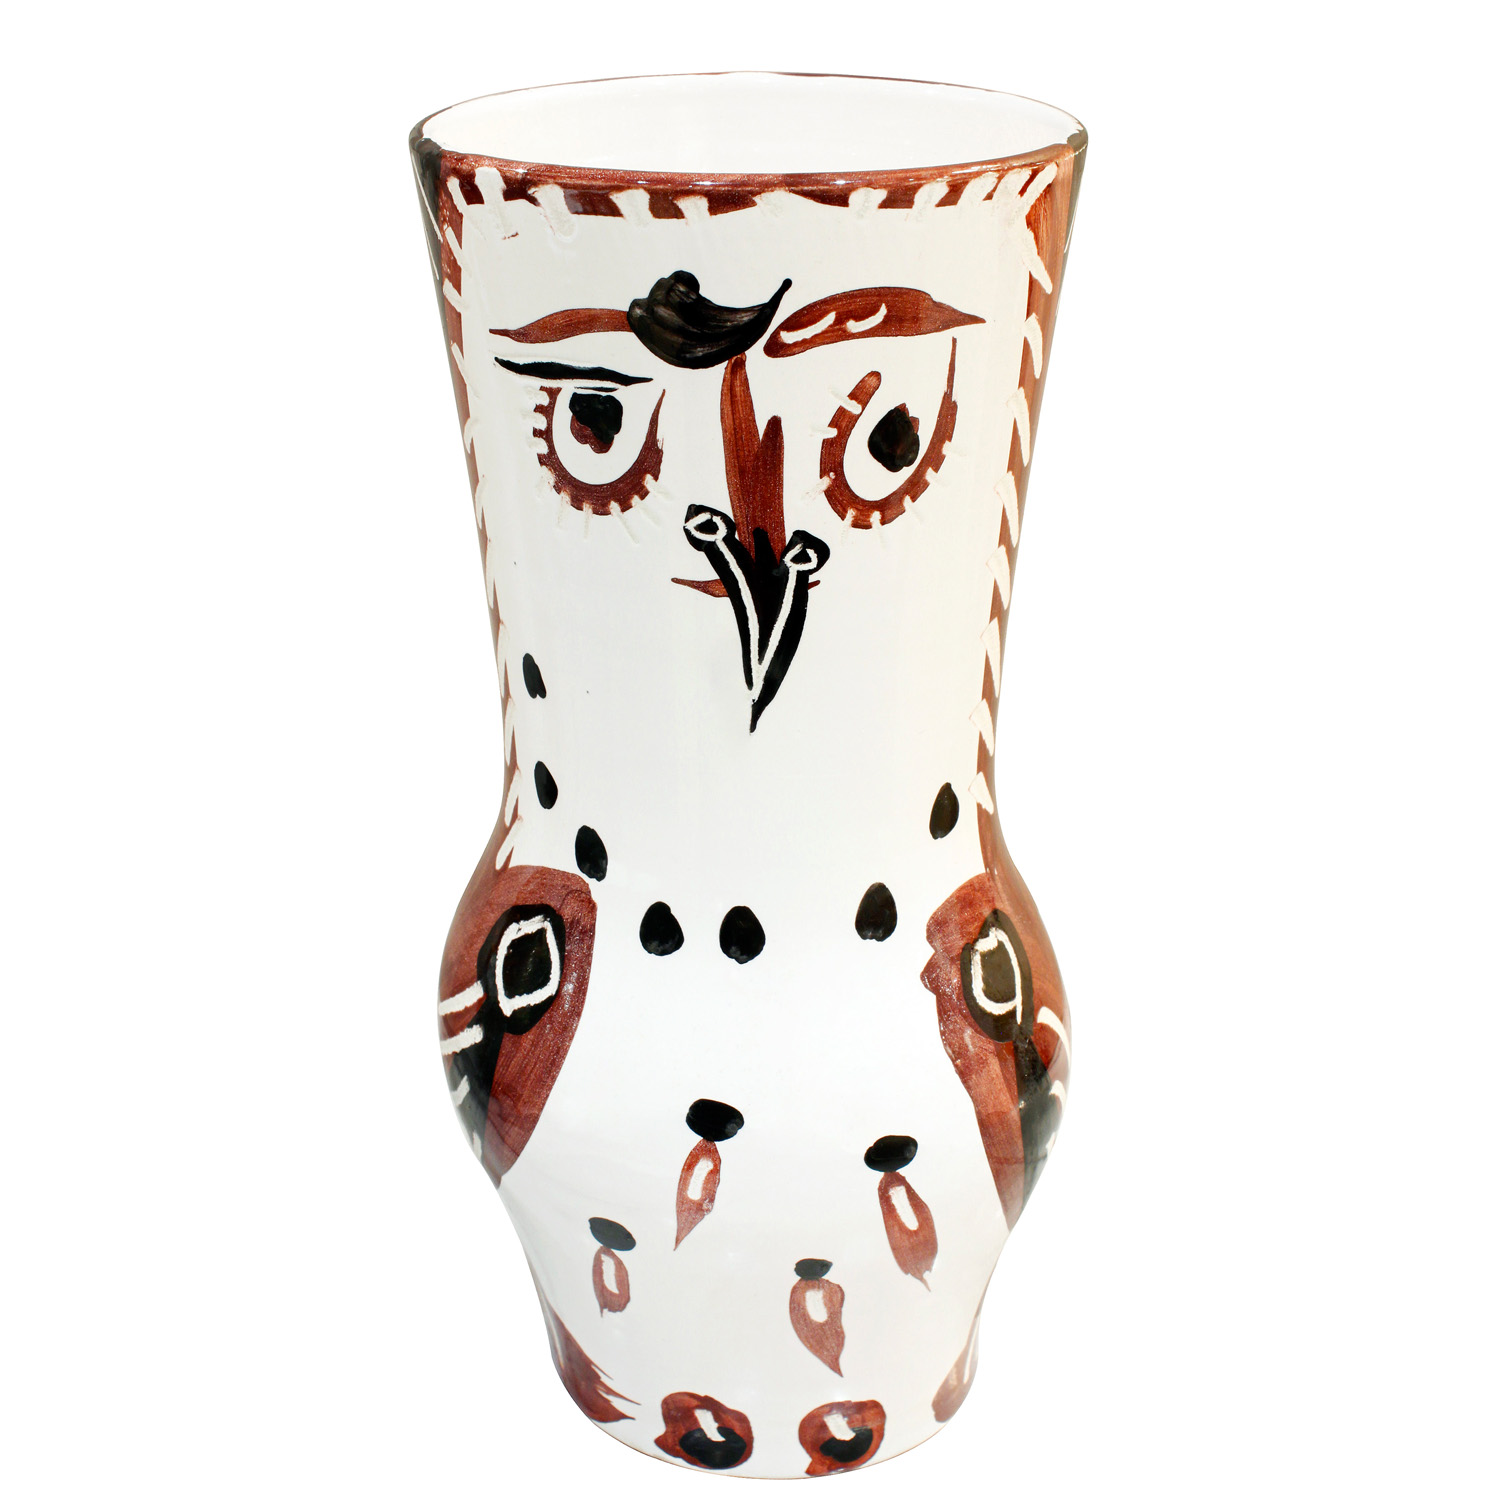 Picasso 200 lrg wood owl ceramic42 face.jpg